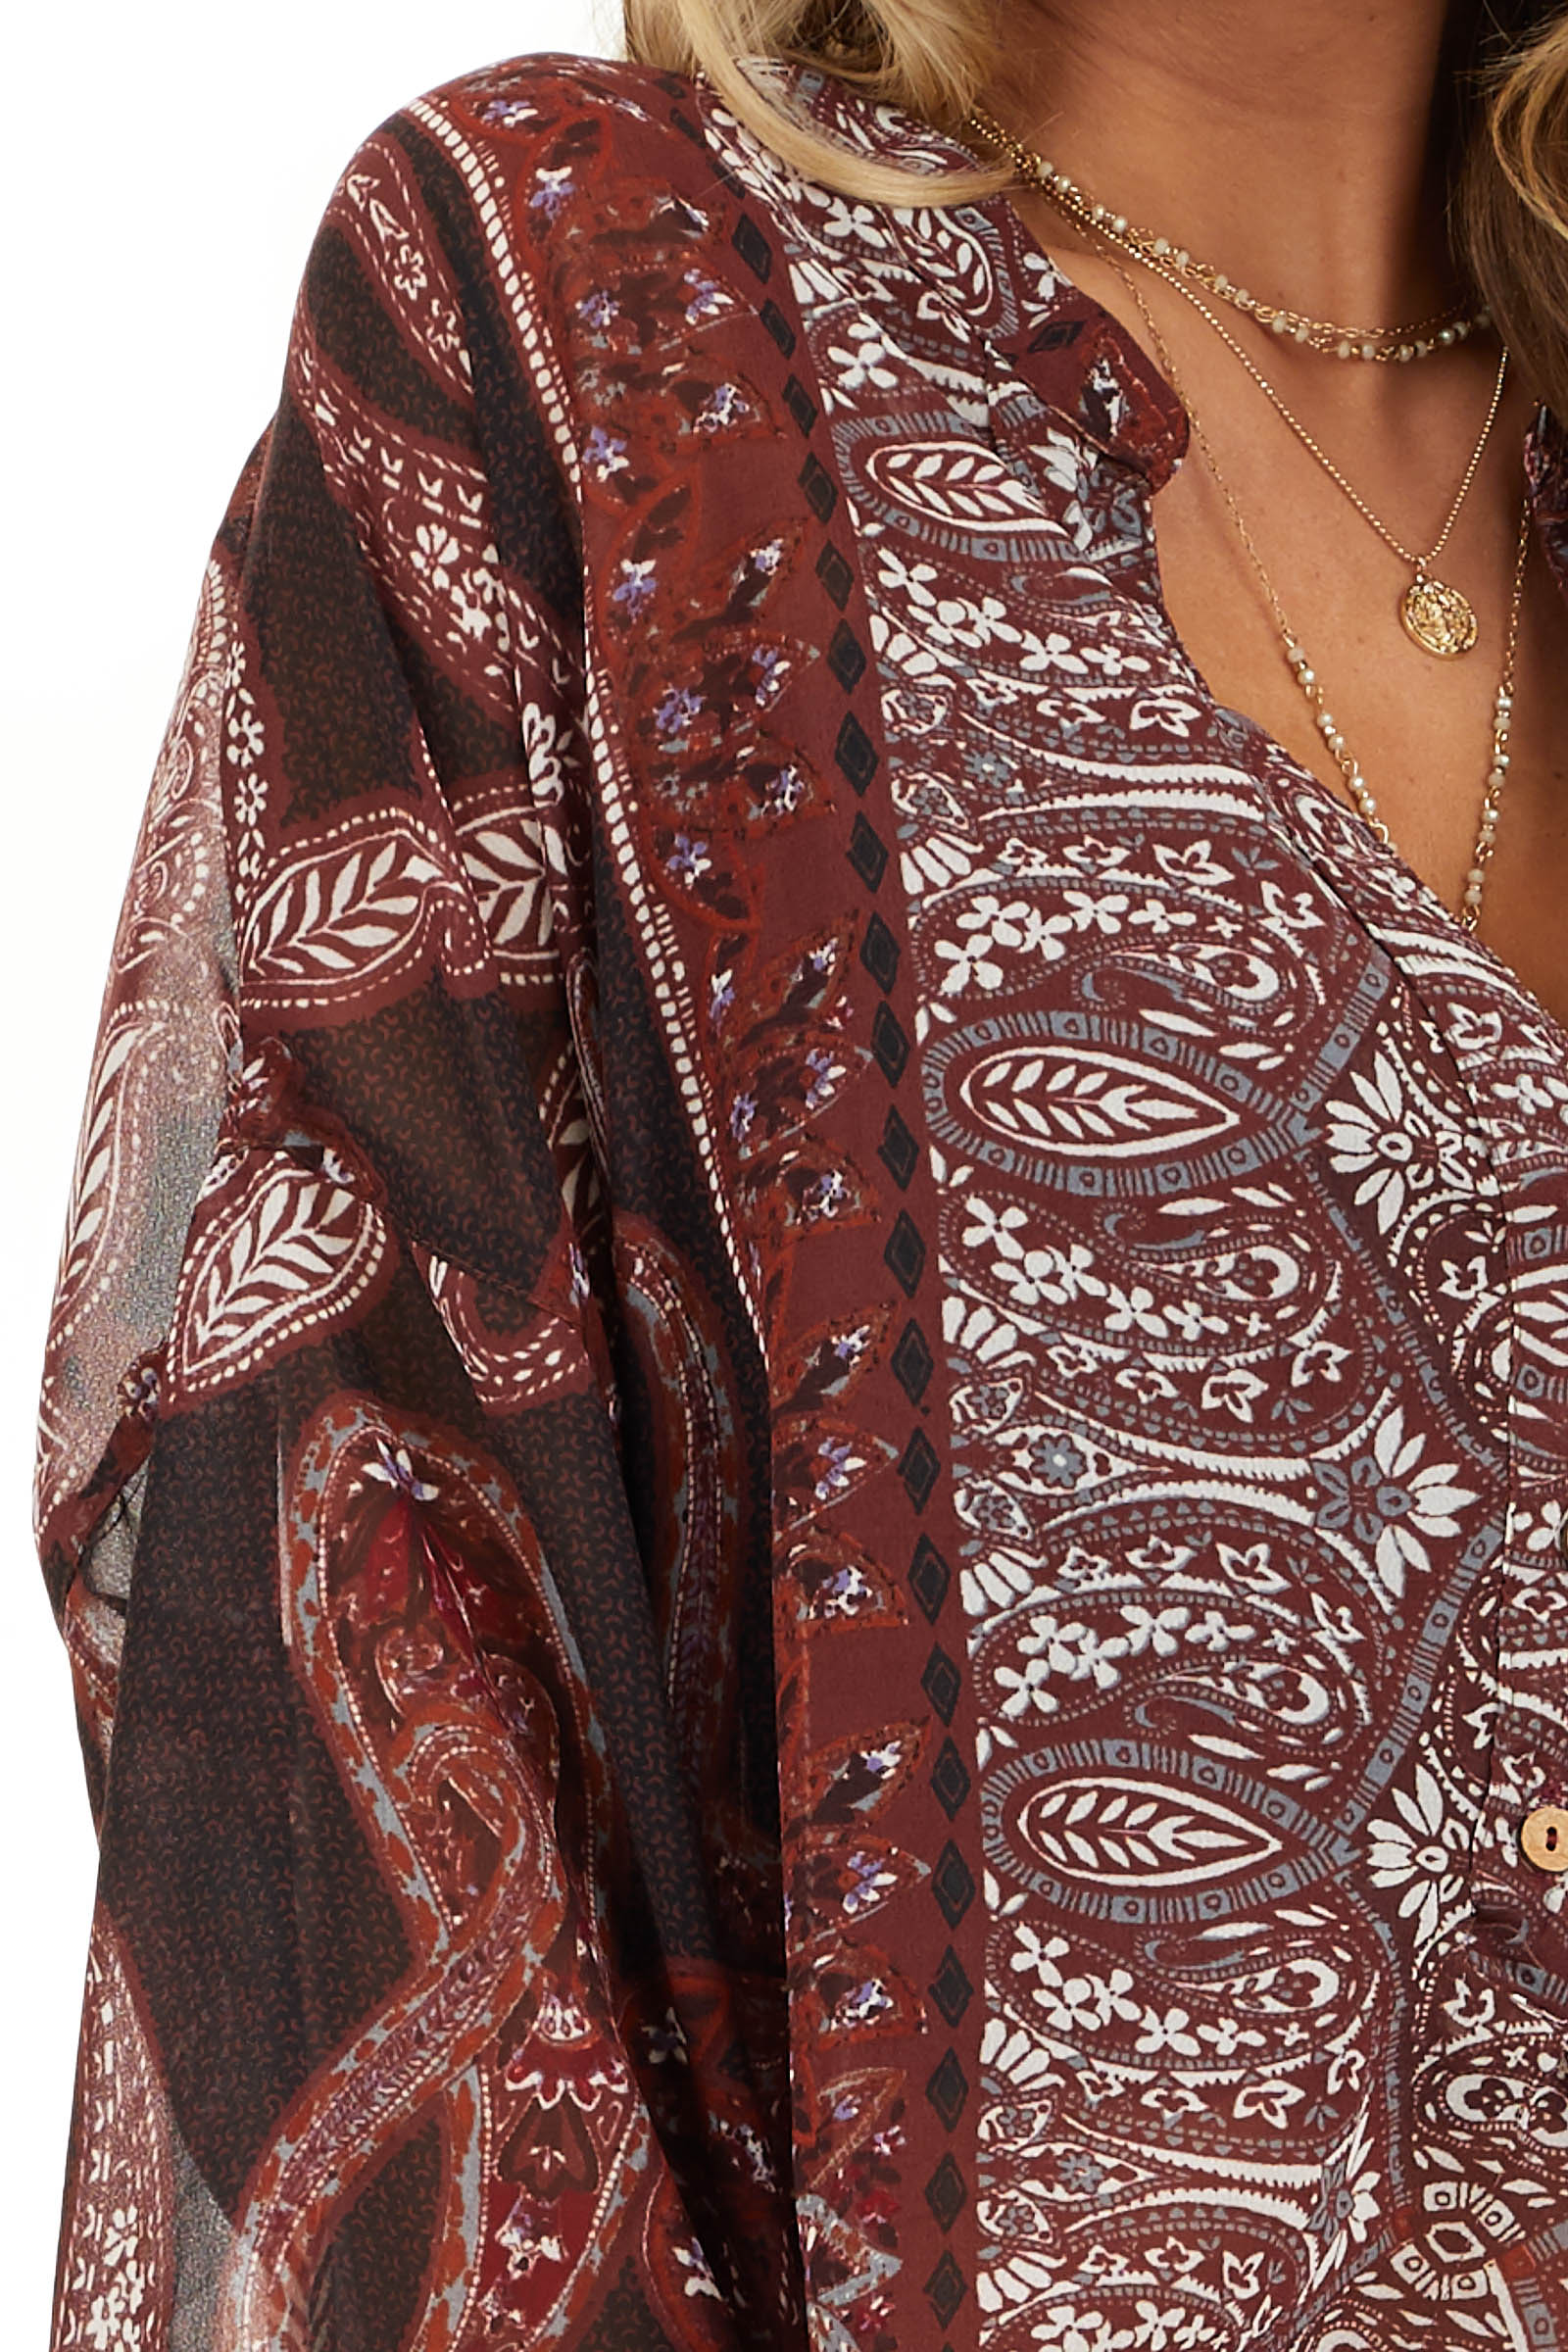 Burgundy Paisley Print Sheer Button Up Blouse detail